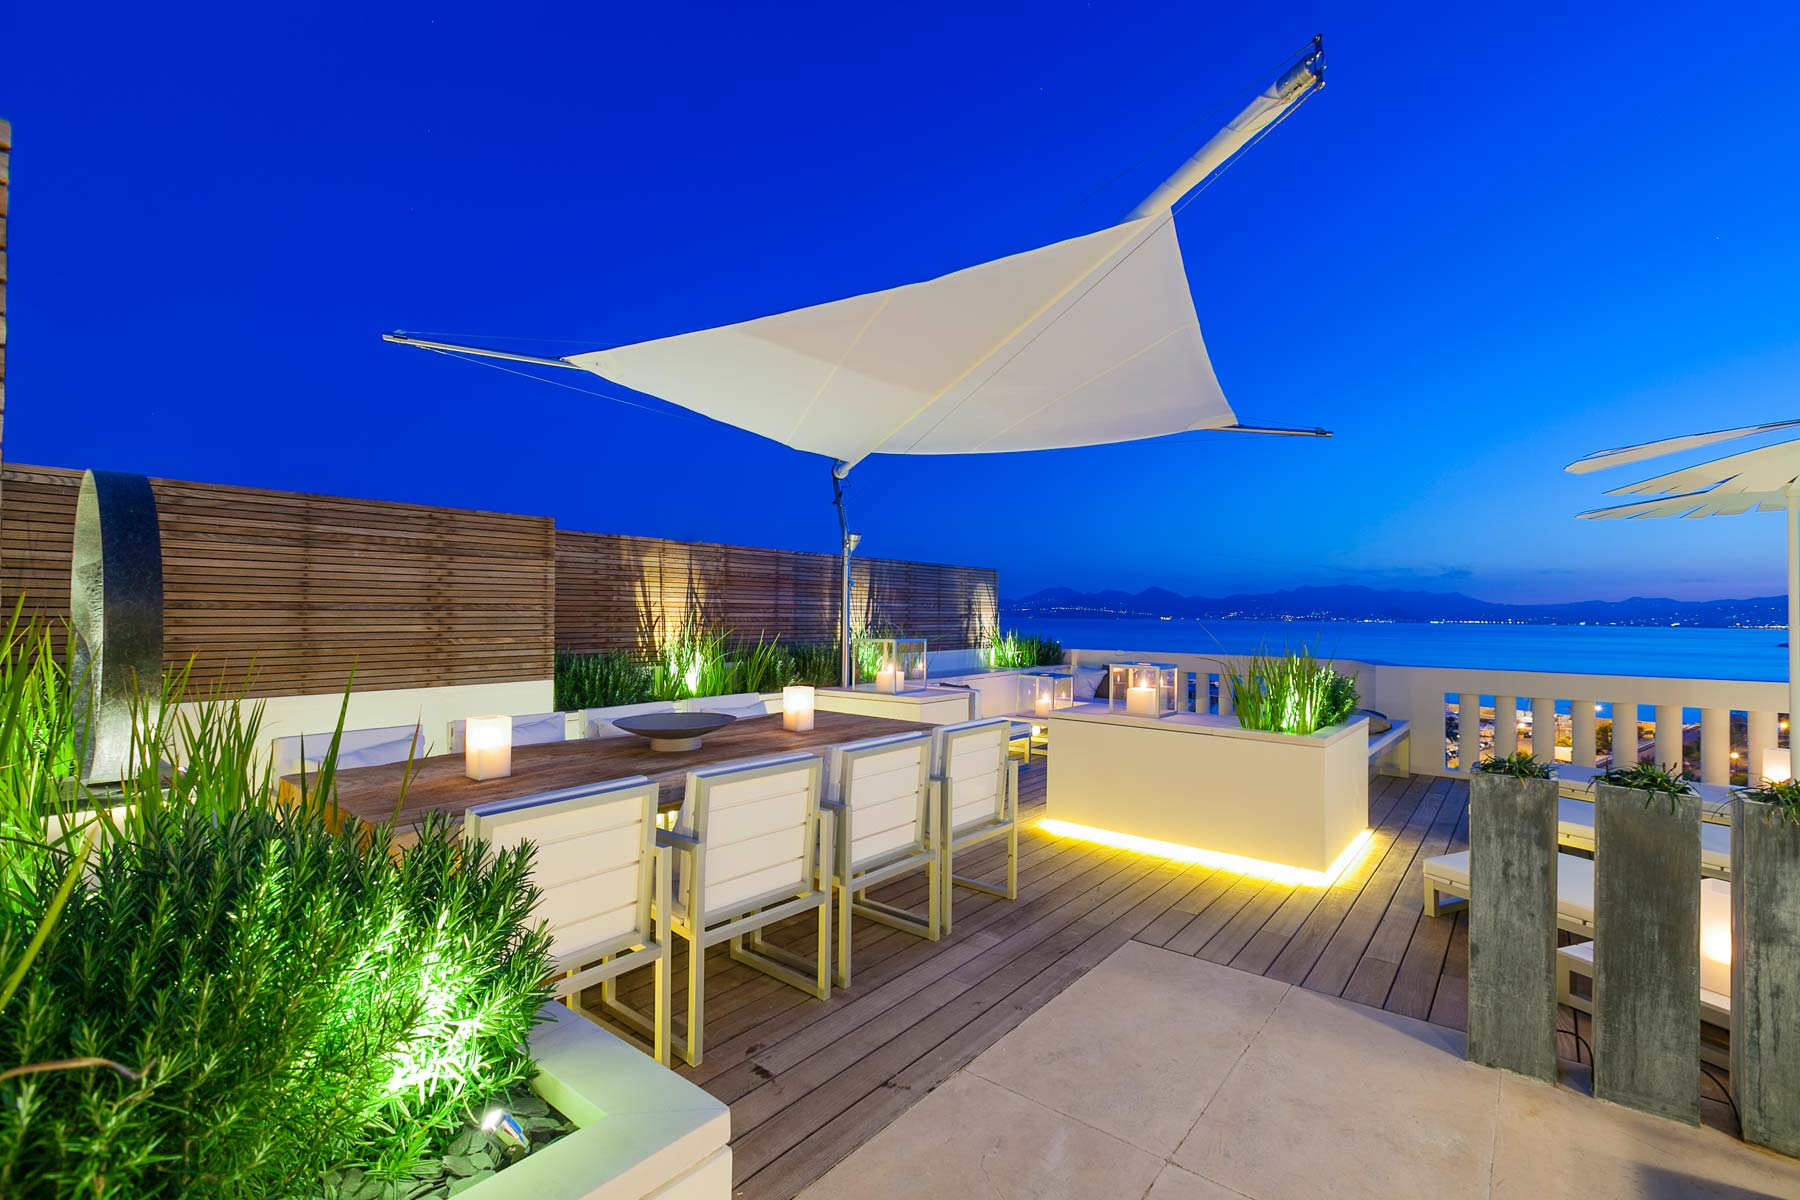 Roof terrace at dusk, Canner French Riviera